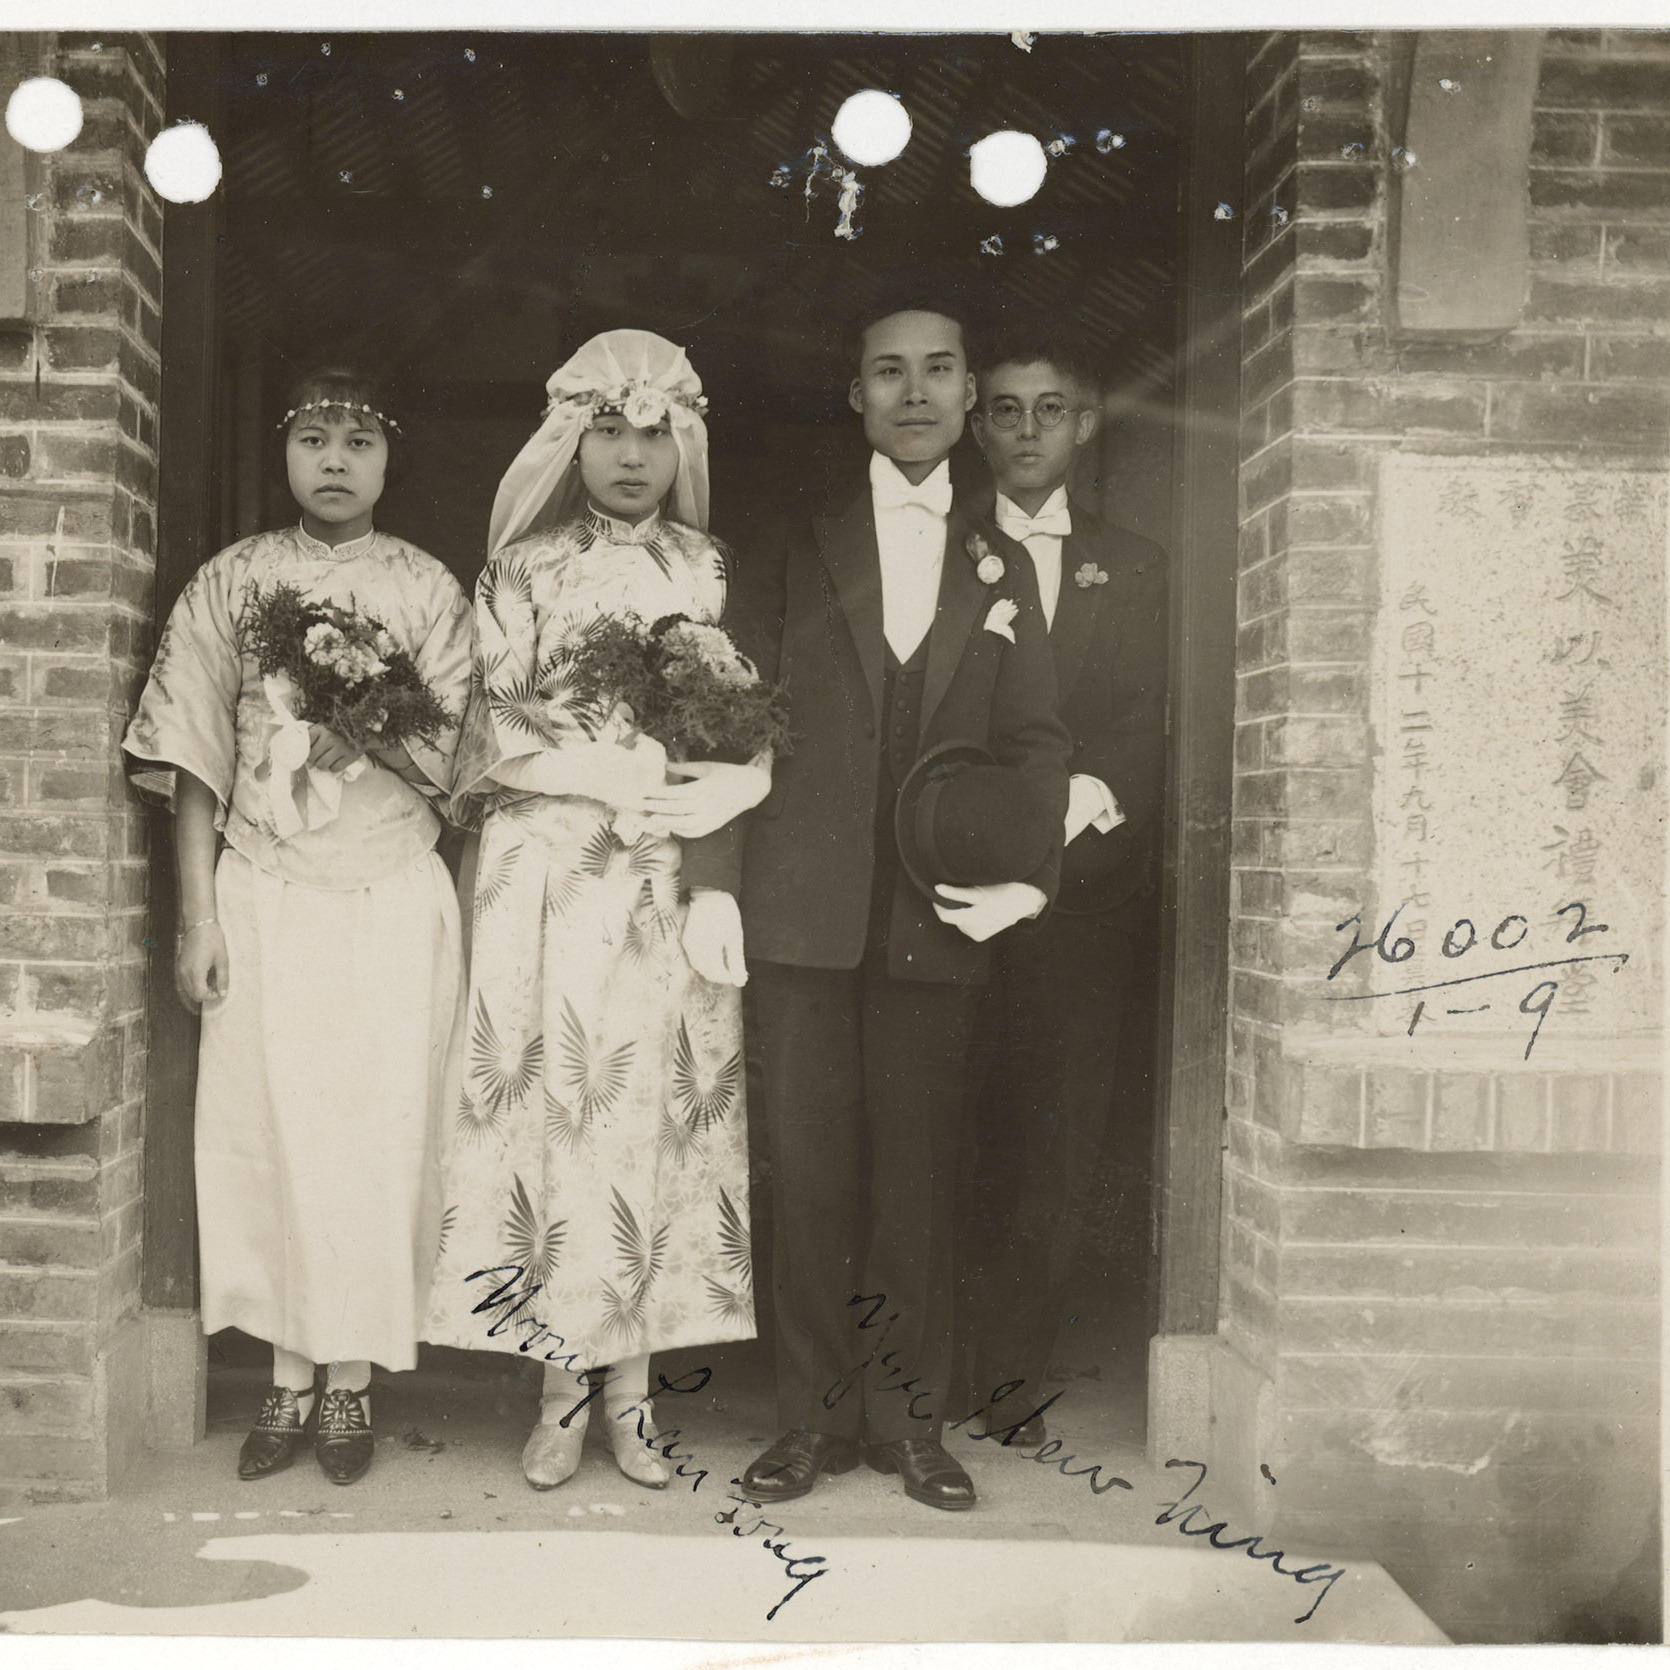 The wedding photograph of Wong Lan Fong and Yee Shew Ning, in front of the Mei Yi Mei Church, a Chinese Methodist Church, at the island of Honam, across the Pearl River from Canton (now Guangzhou) in 1926.